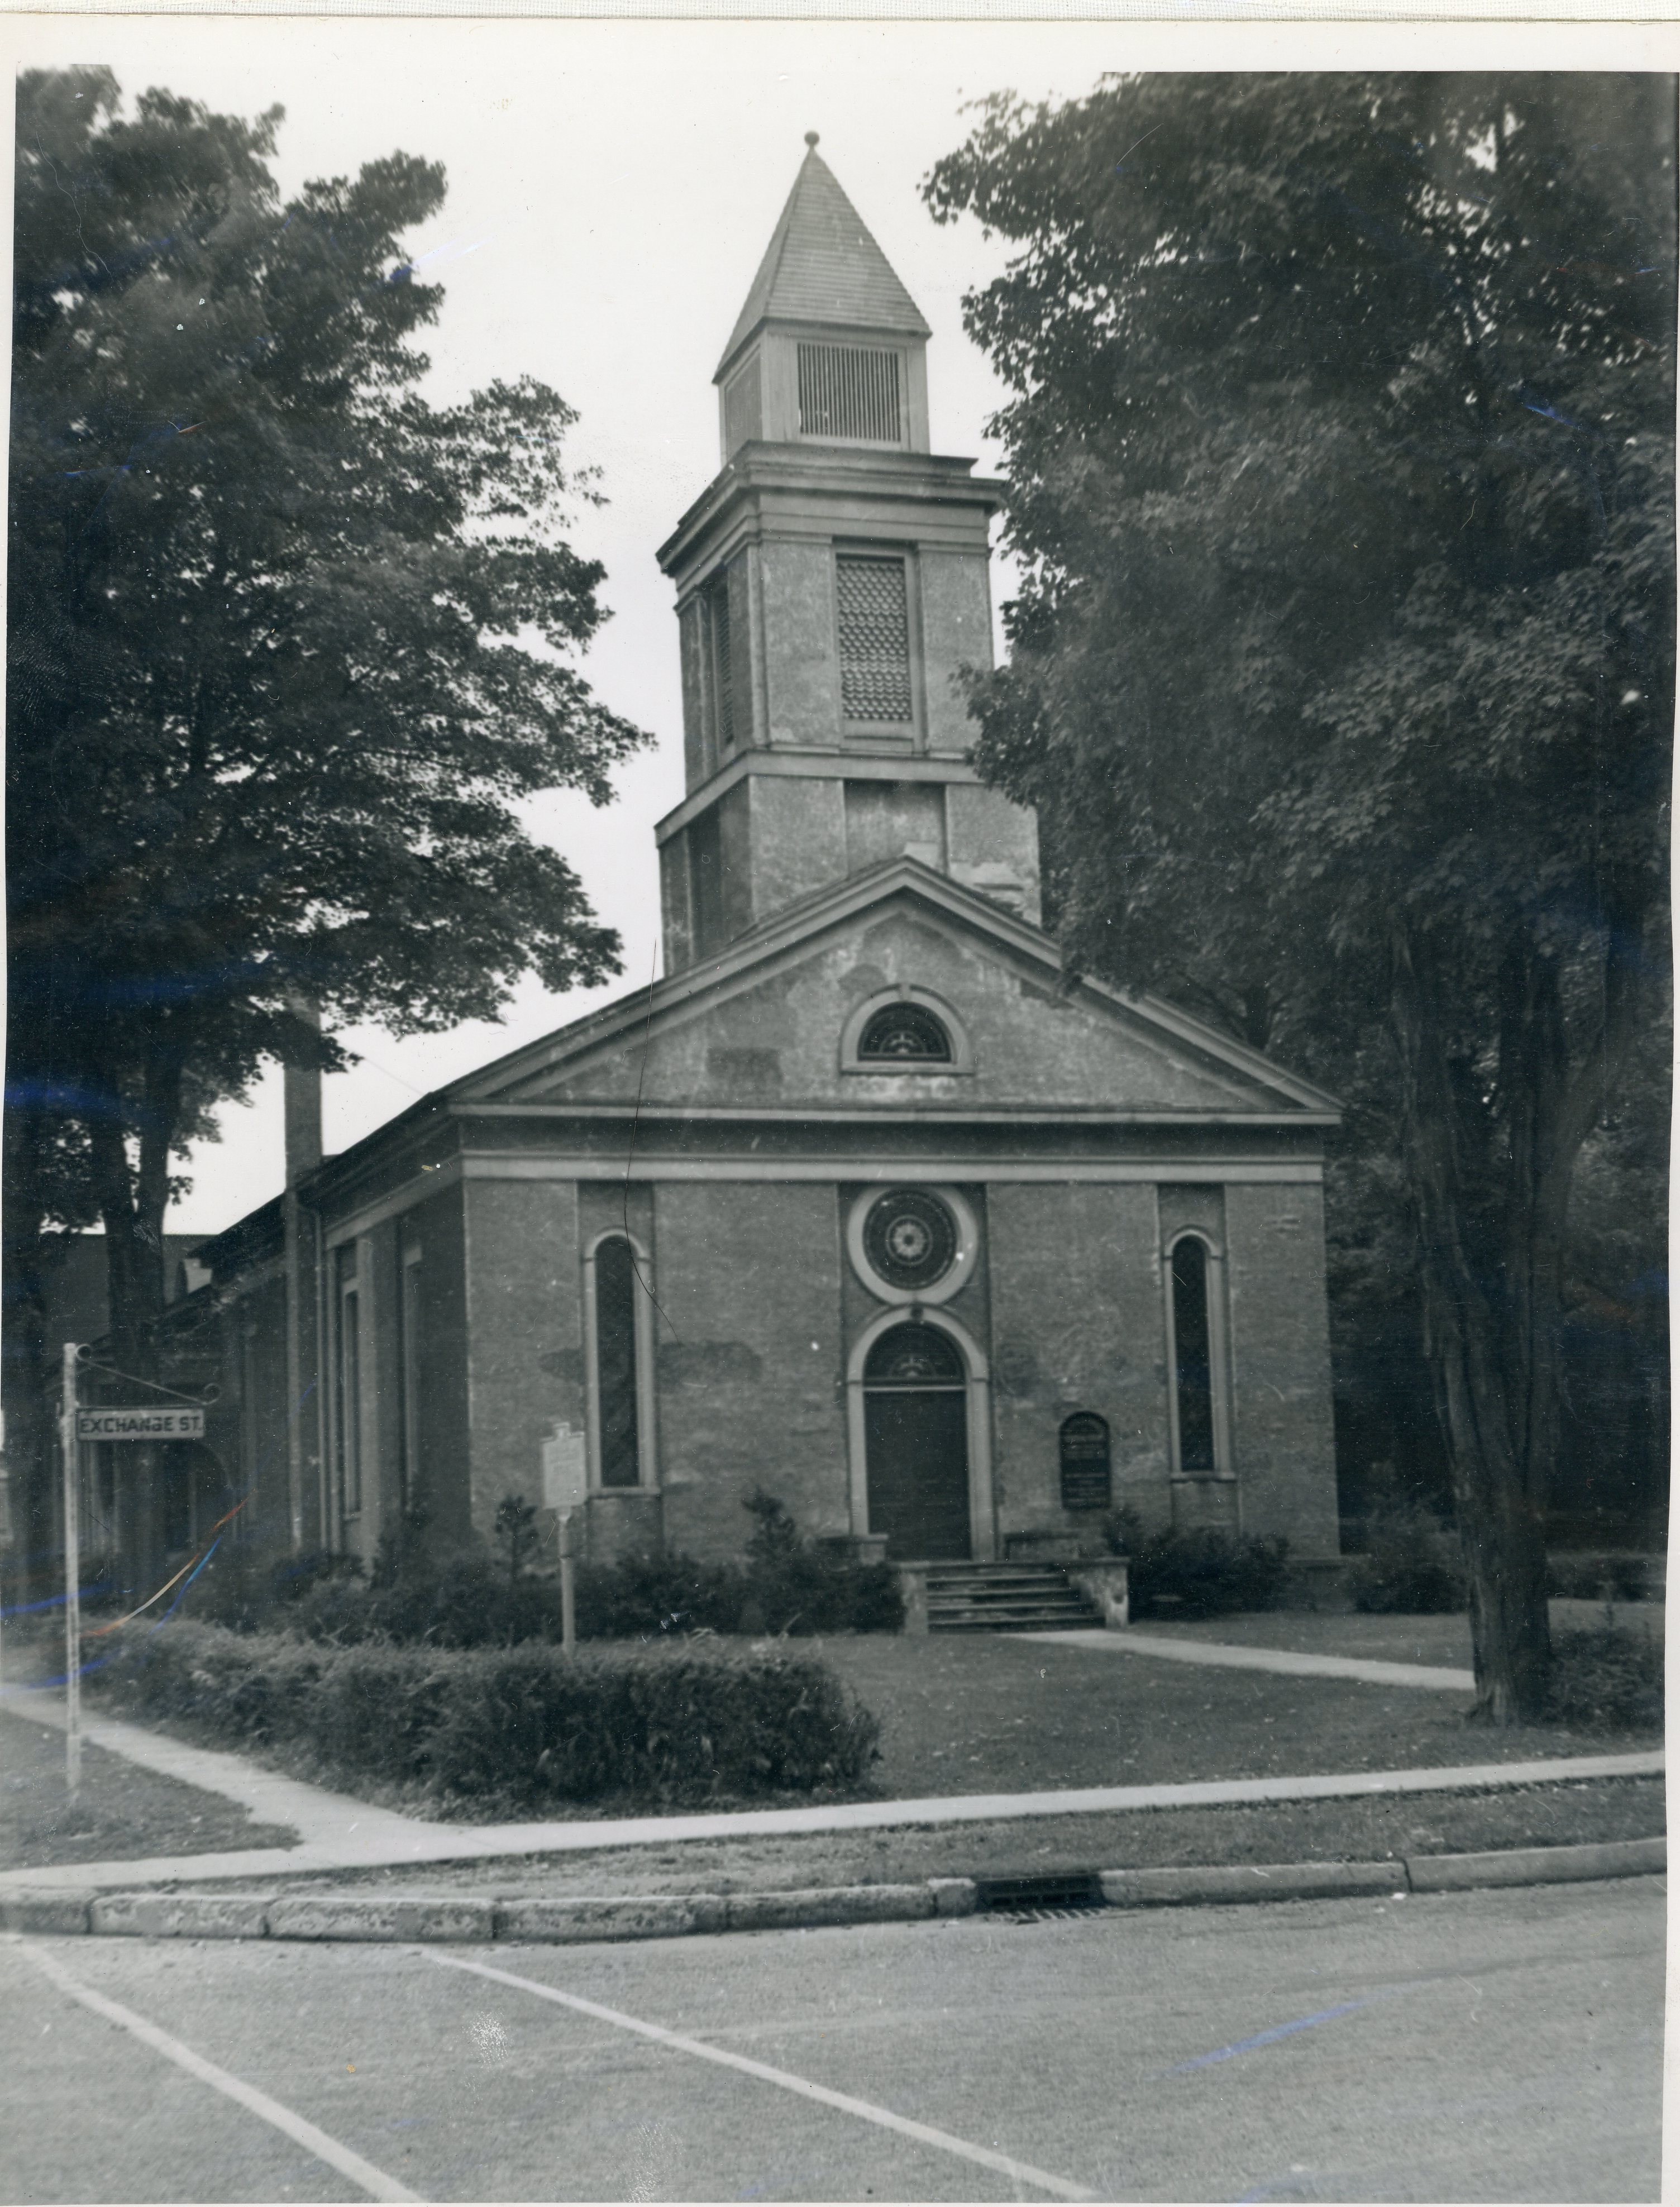 Image of Lutheran Church in Dansville